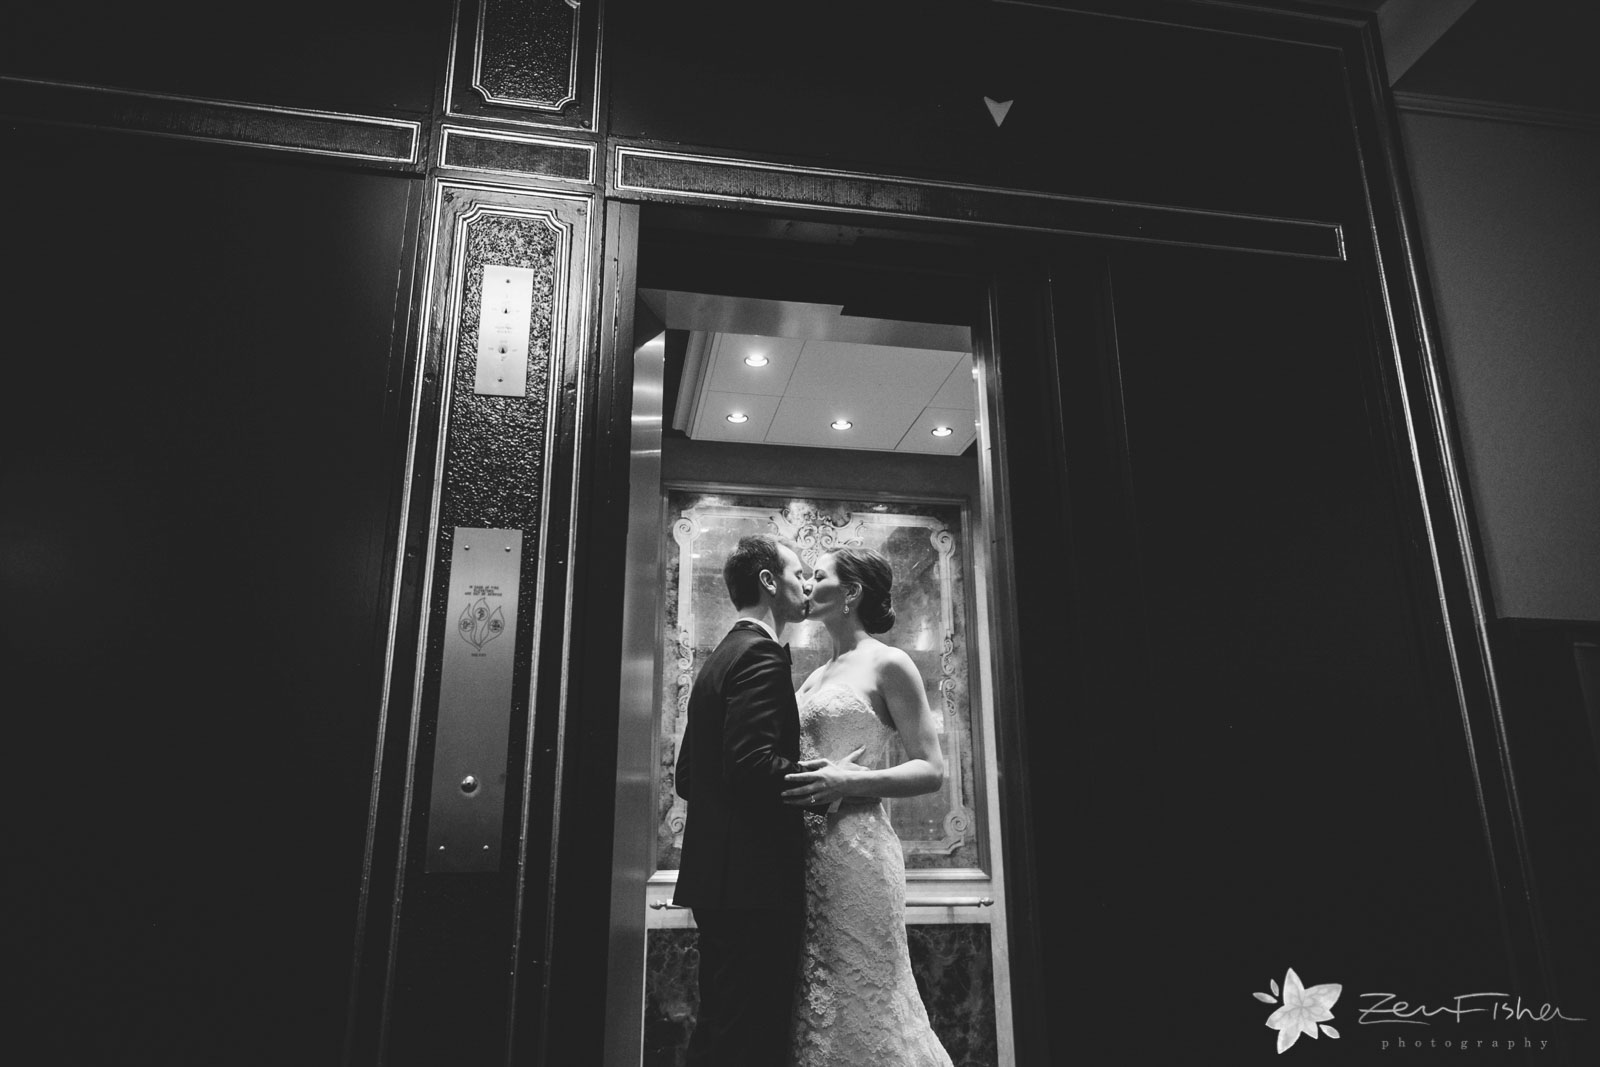 Bride and groom hold each other and kiss in elevator as doors close, epic lighting.